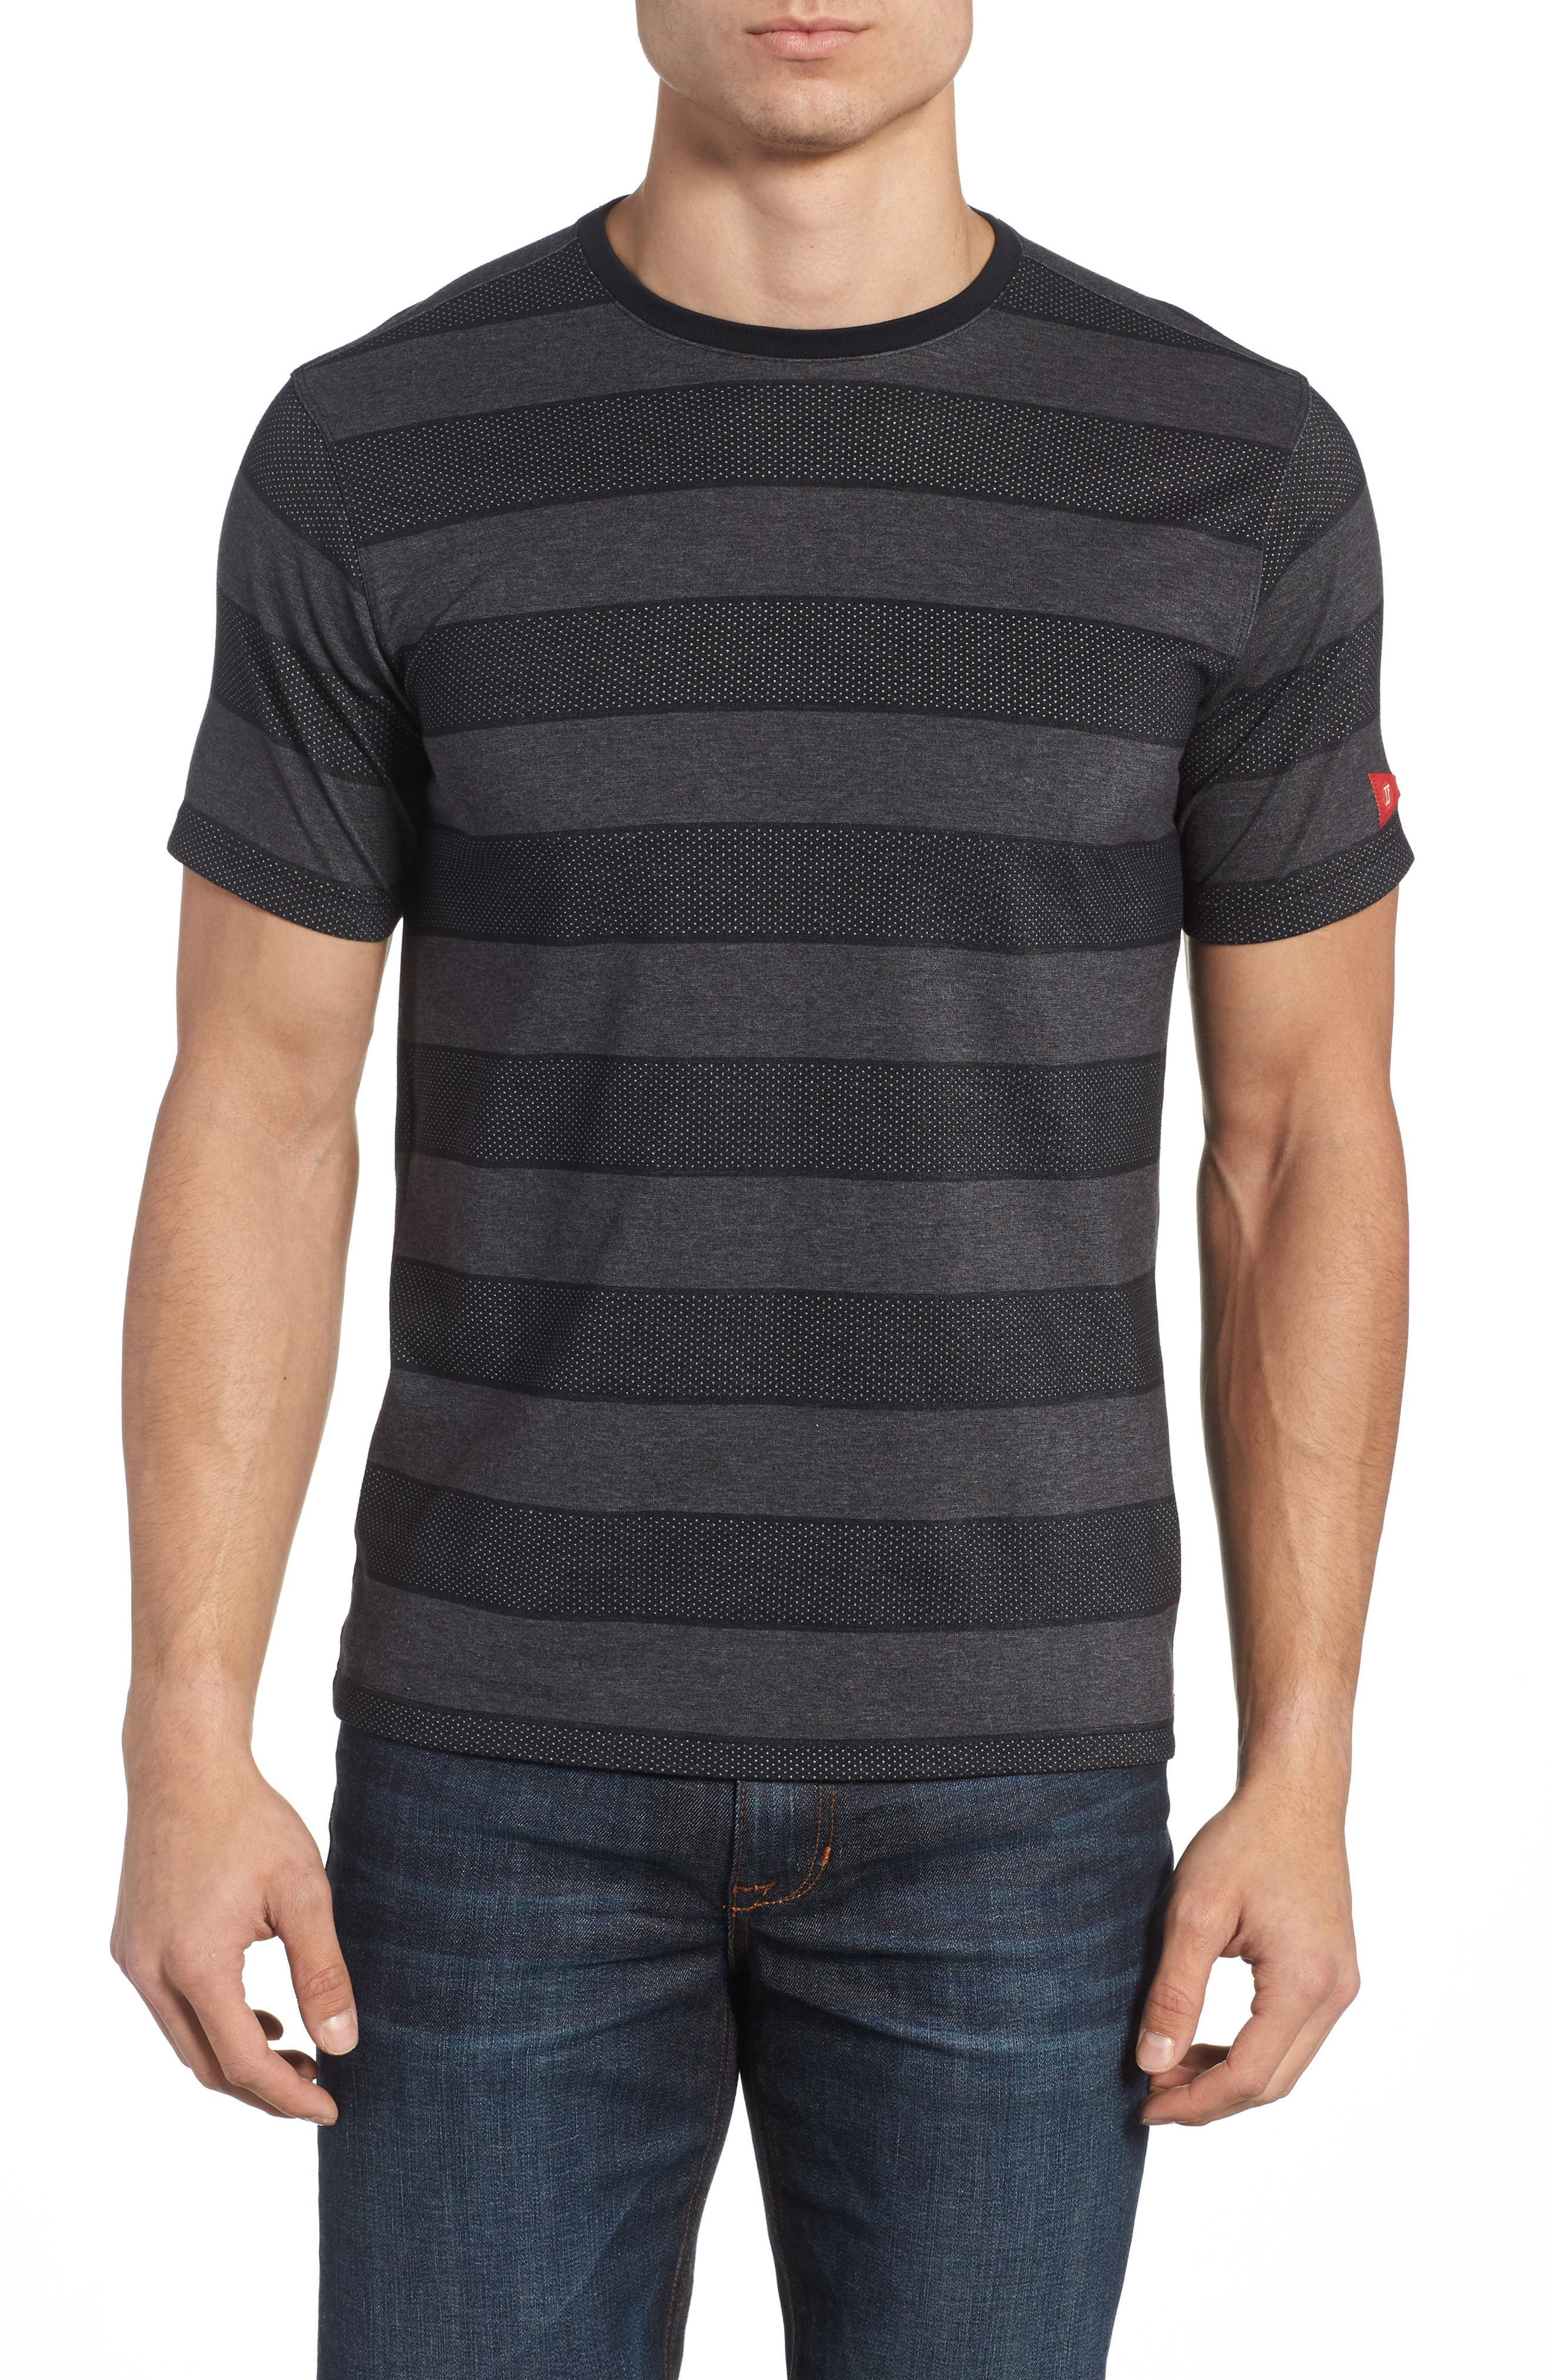 Regatta Dri-FIT T-Shirt,                         Main,                         color,